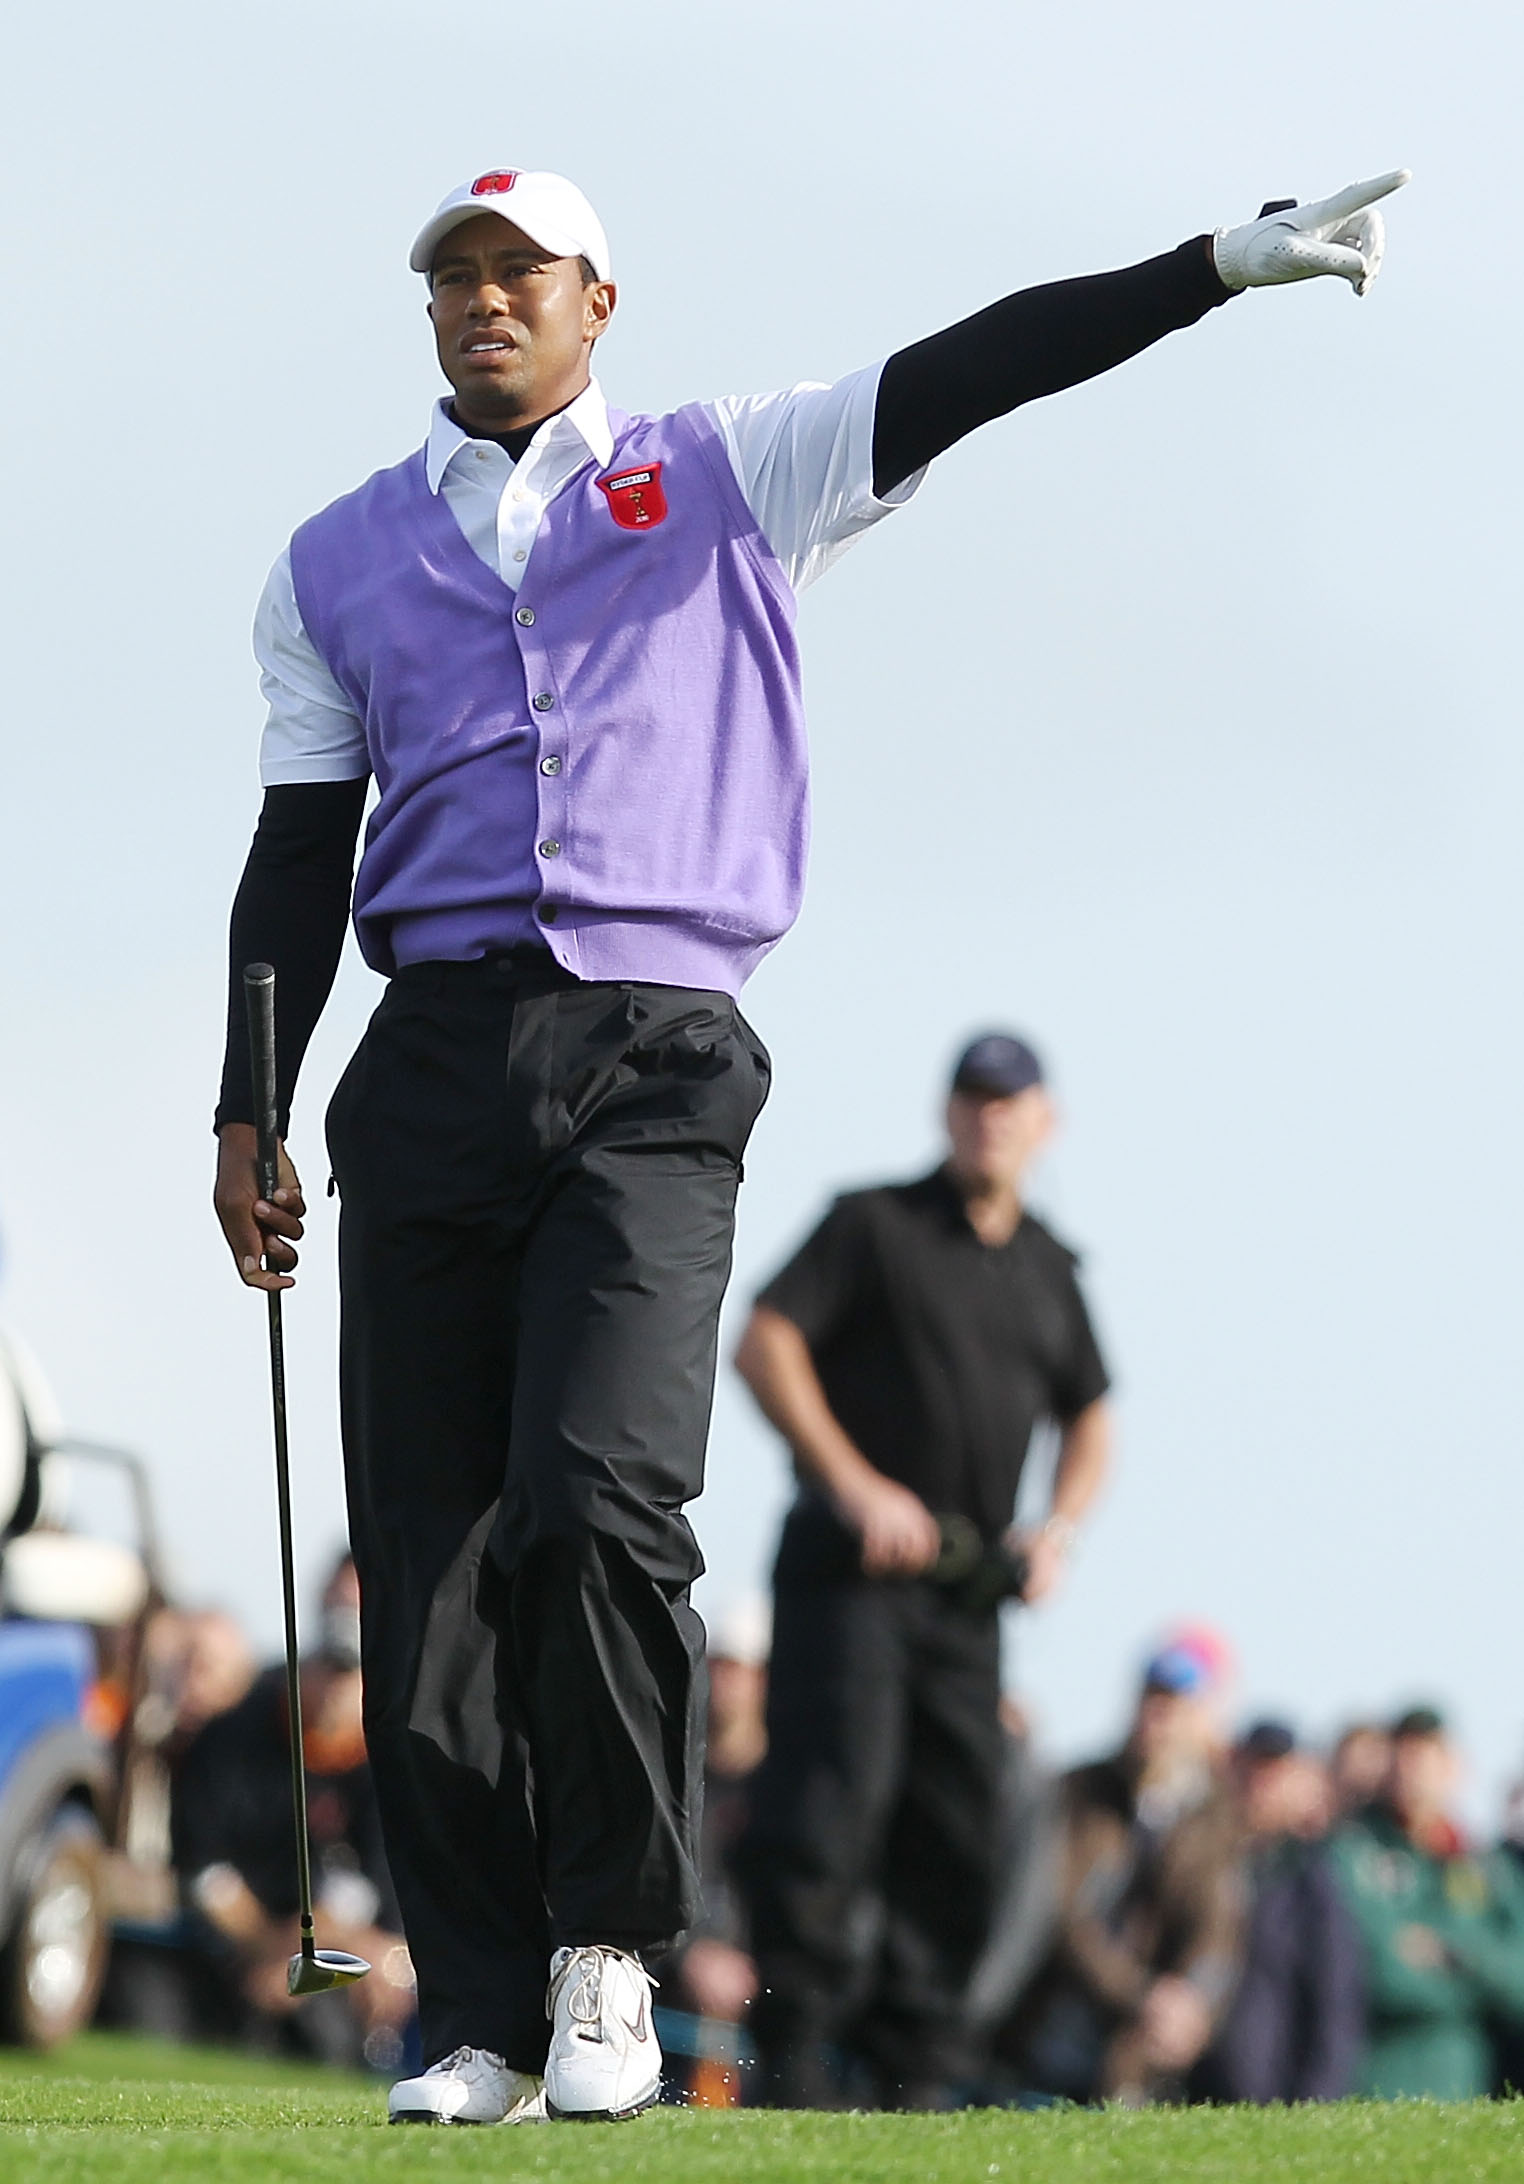 NEWPORT, WALES - OCTOBER 02:  Tiger Woods of the USA watches his second shot on the 18th hole during the rescheduled Morning Fourball Matches during the 2010 Ryder Cup at the Celtic Manor Resort on October 2, 2010 in Newport, Wales.  (Photo by Andy Lyons/